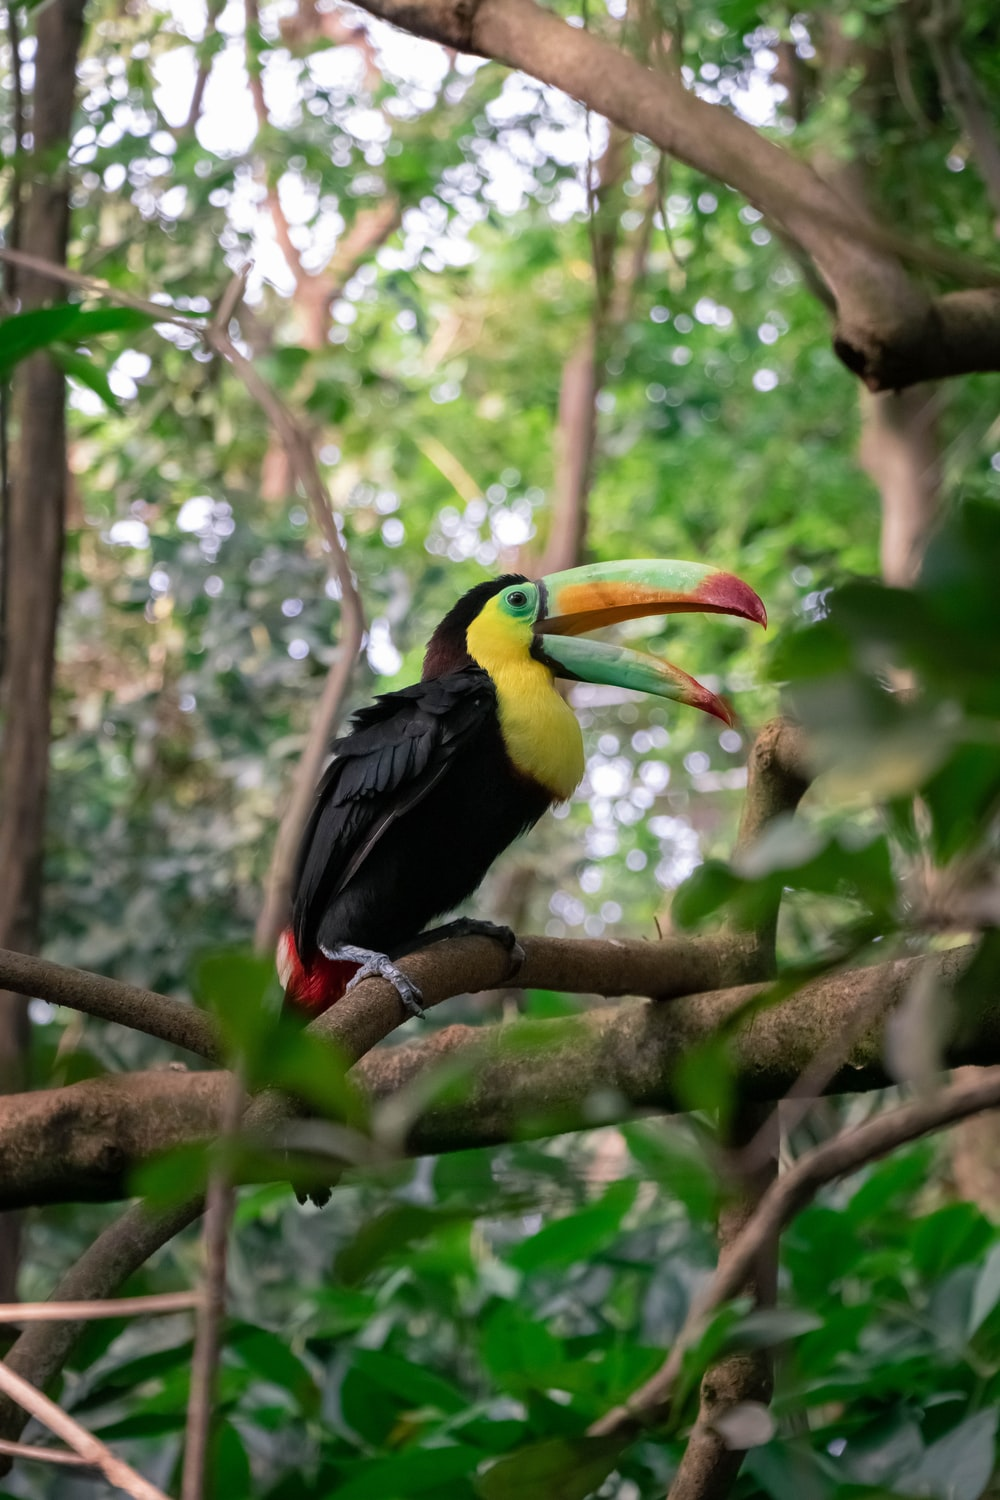 black yellow and red bird on brown tree branch during daytime